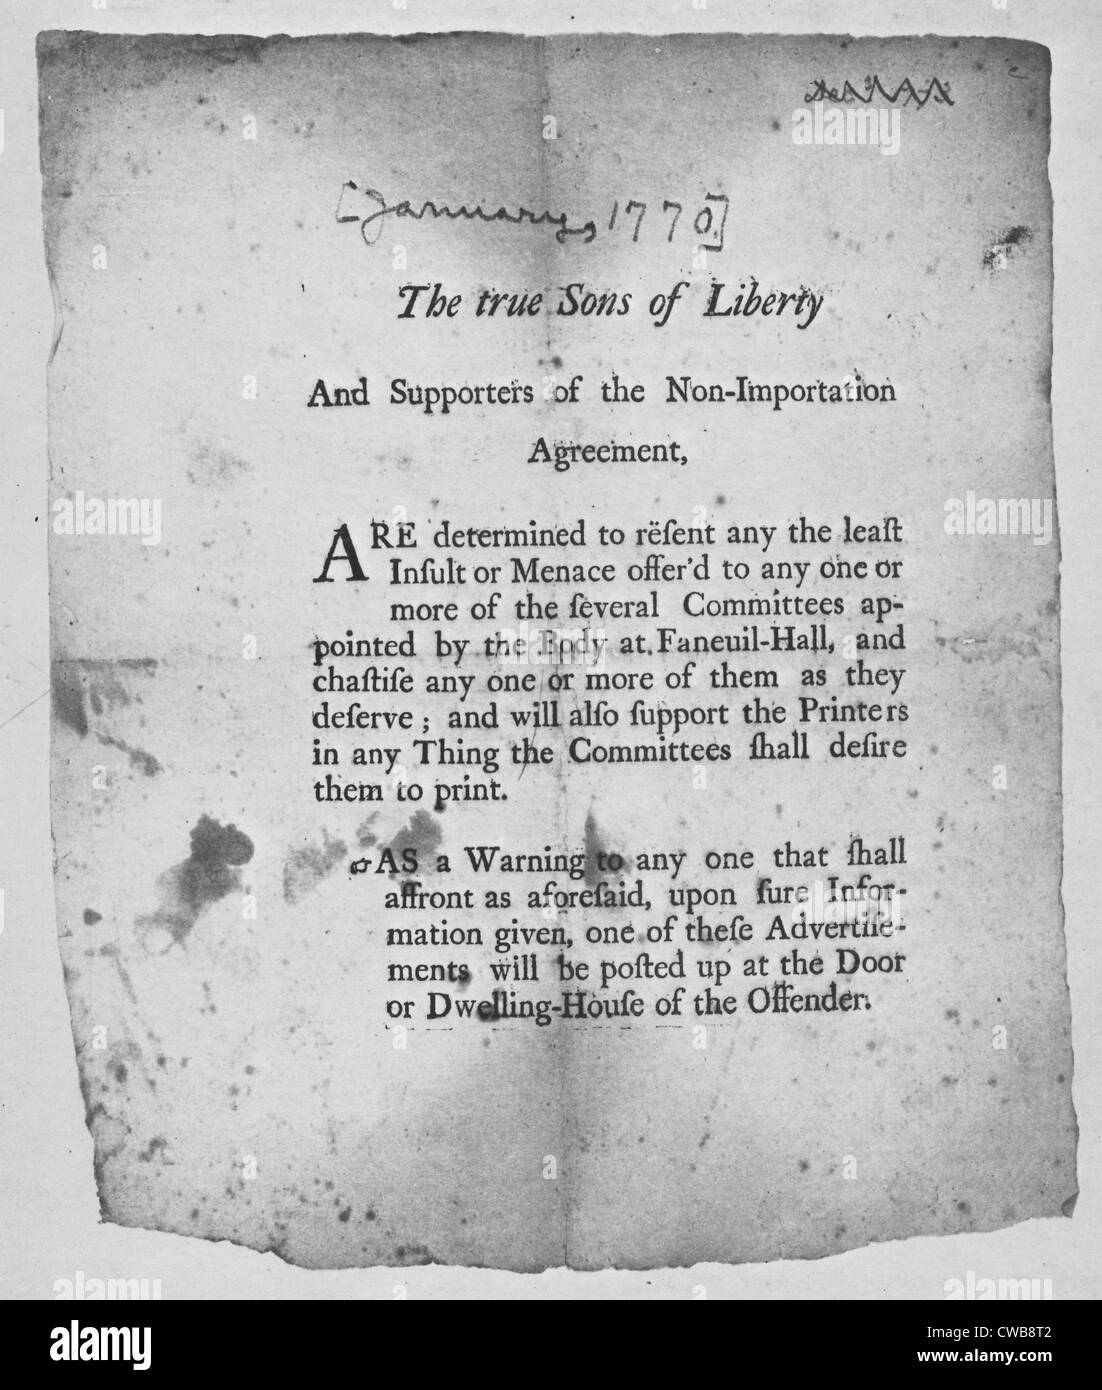 The American Revolution. Broadside encouraging action by the Sons Of Liberty. Boston 1768 - Stock Image